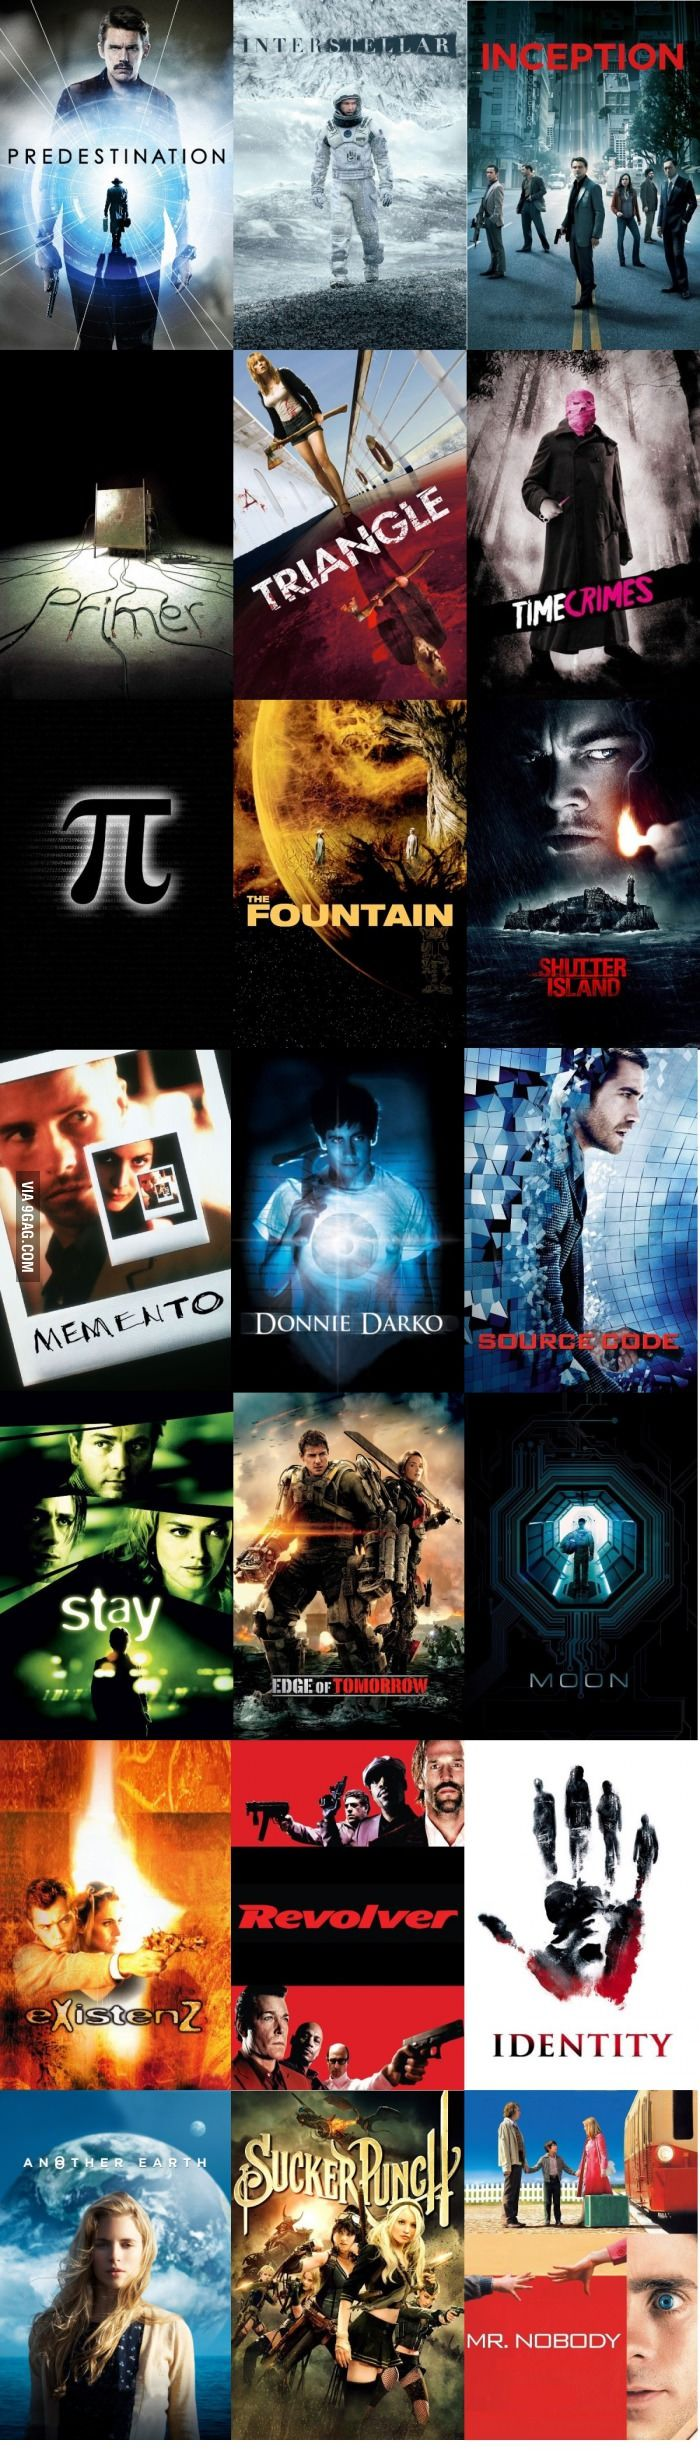 These films have something in common - Mindfuck 33.33% done